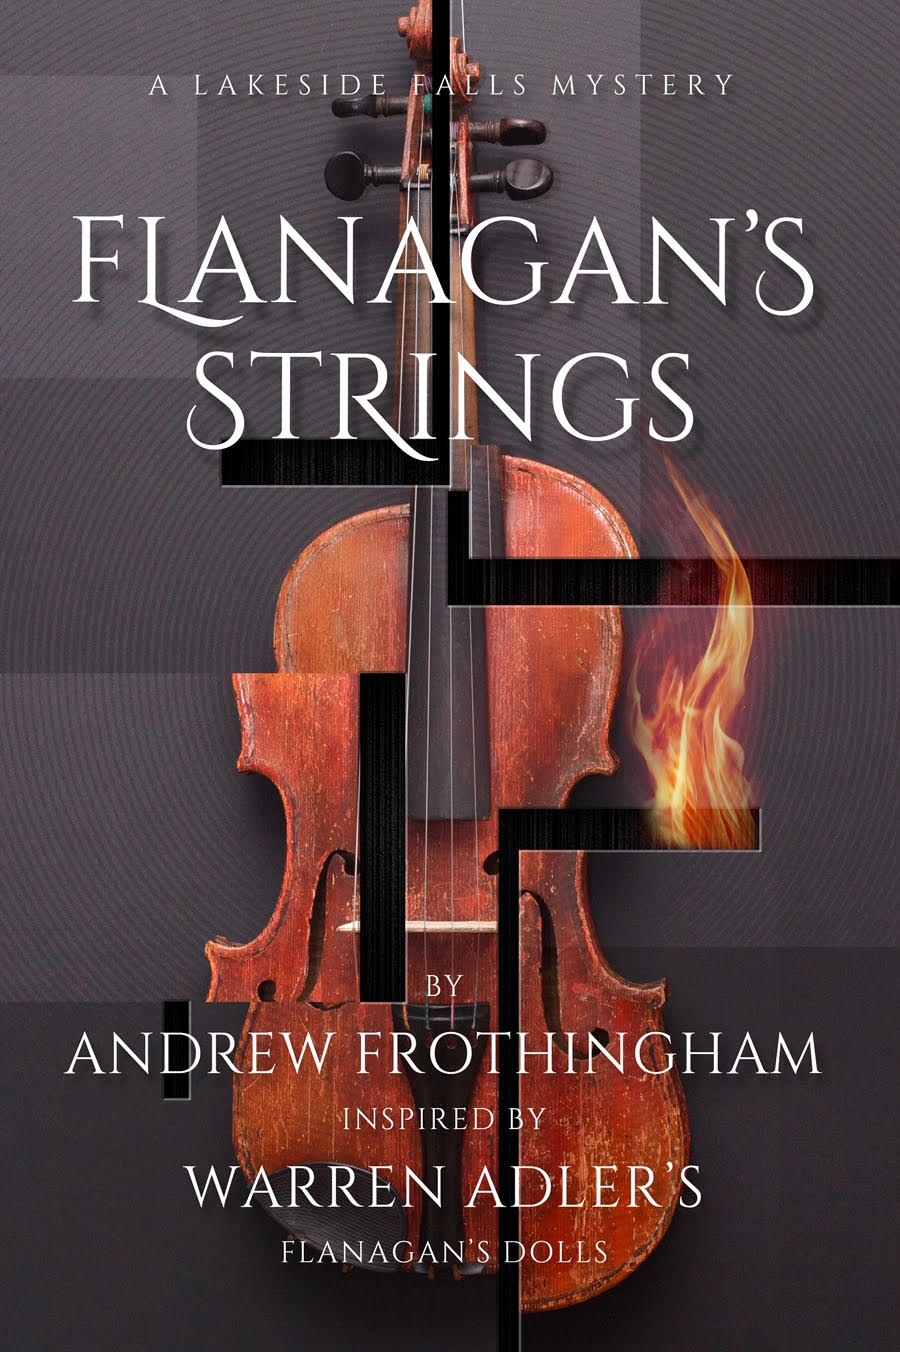 Flanagan's Strings